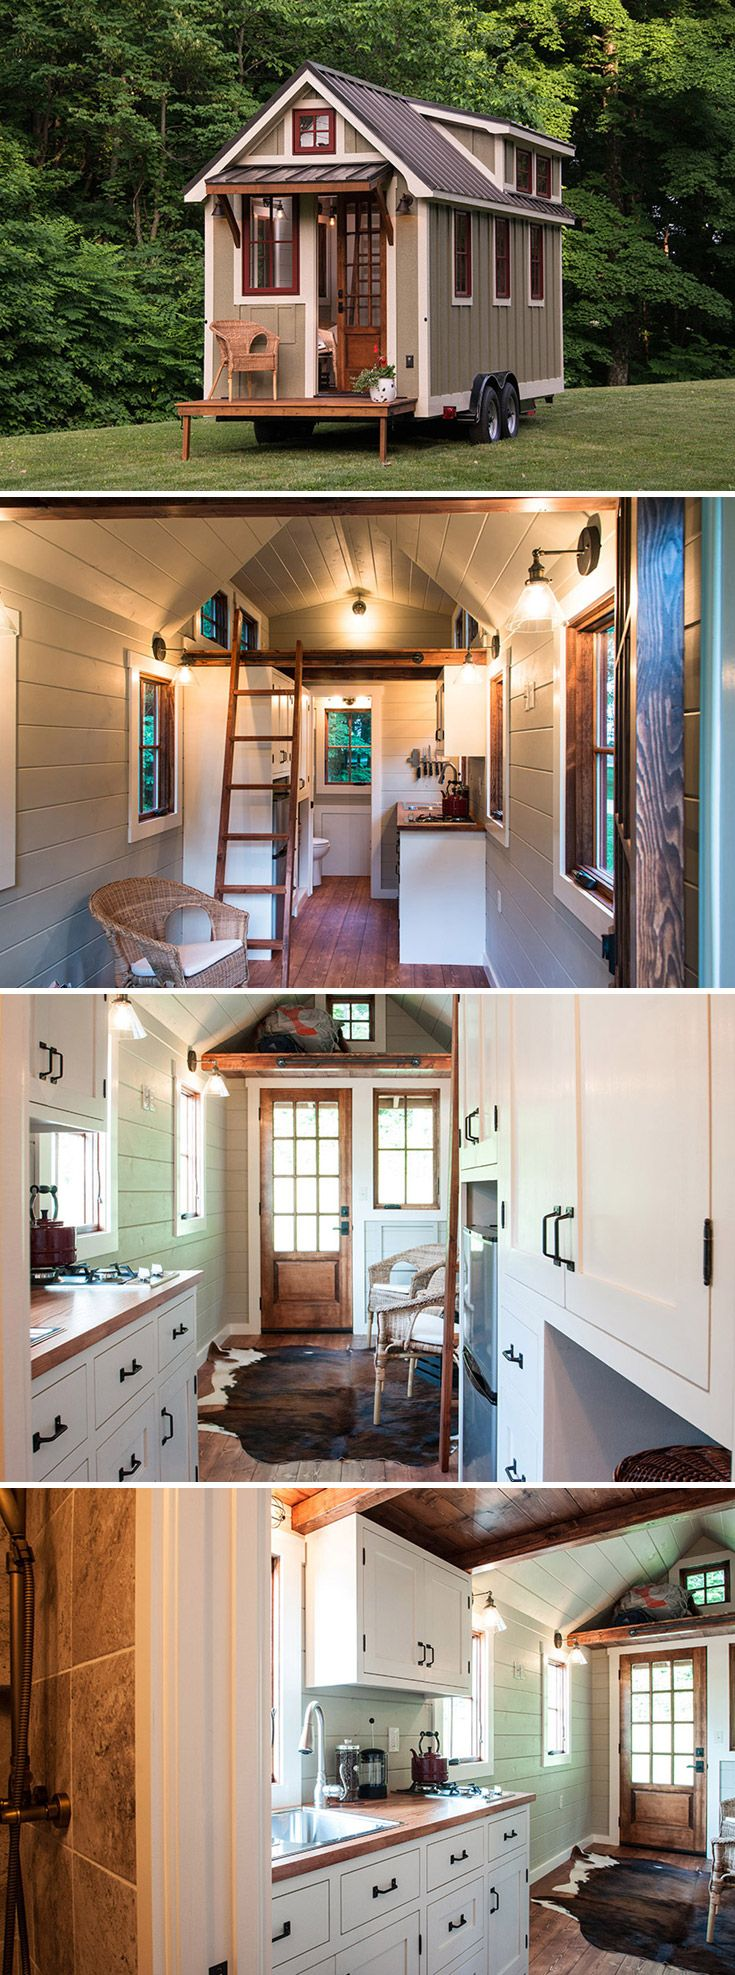 A 150 Sqft Tiny House On Wheels With Upper Cabinets And Large